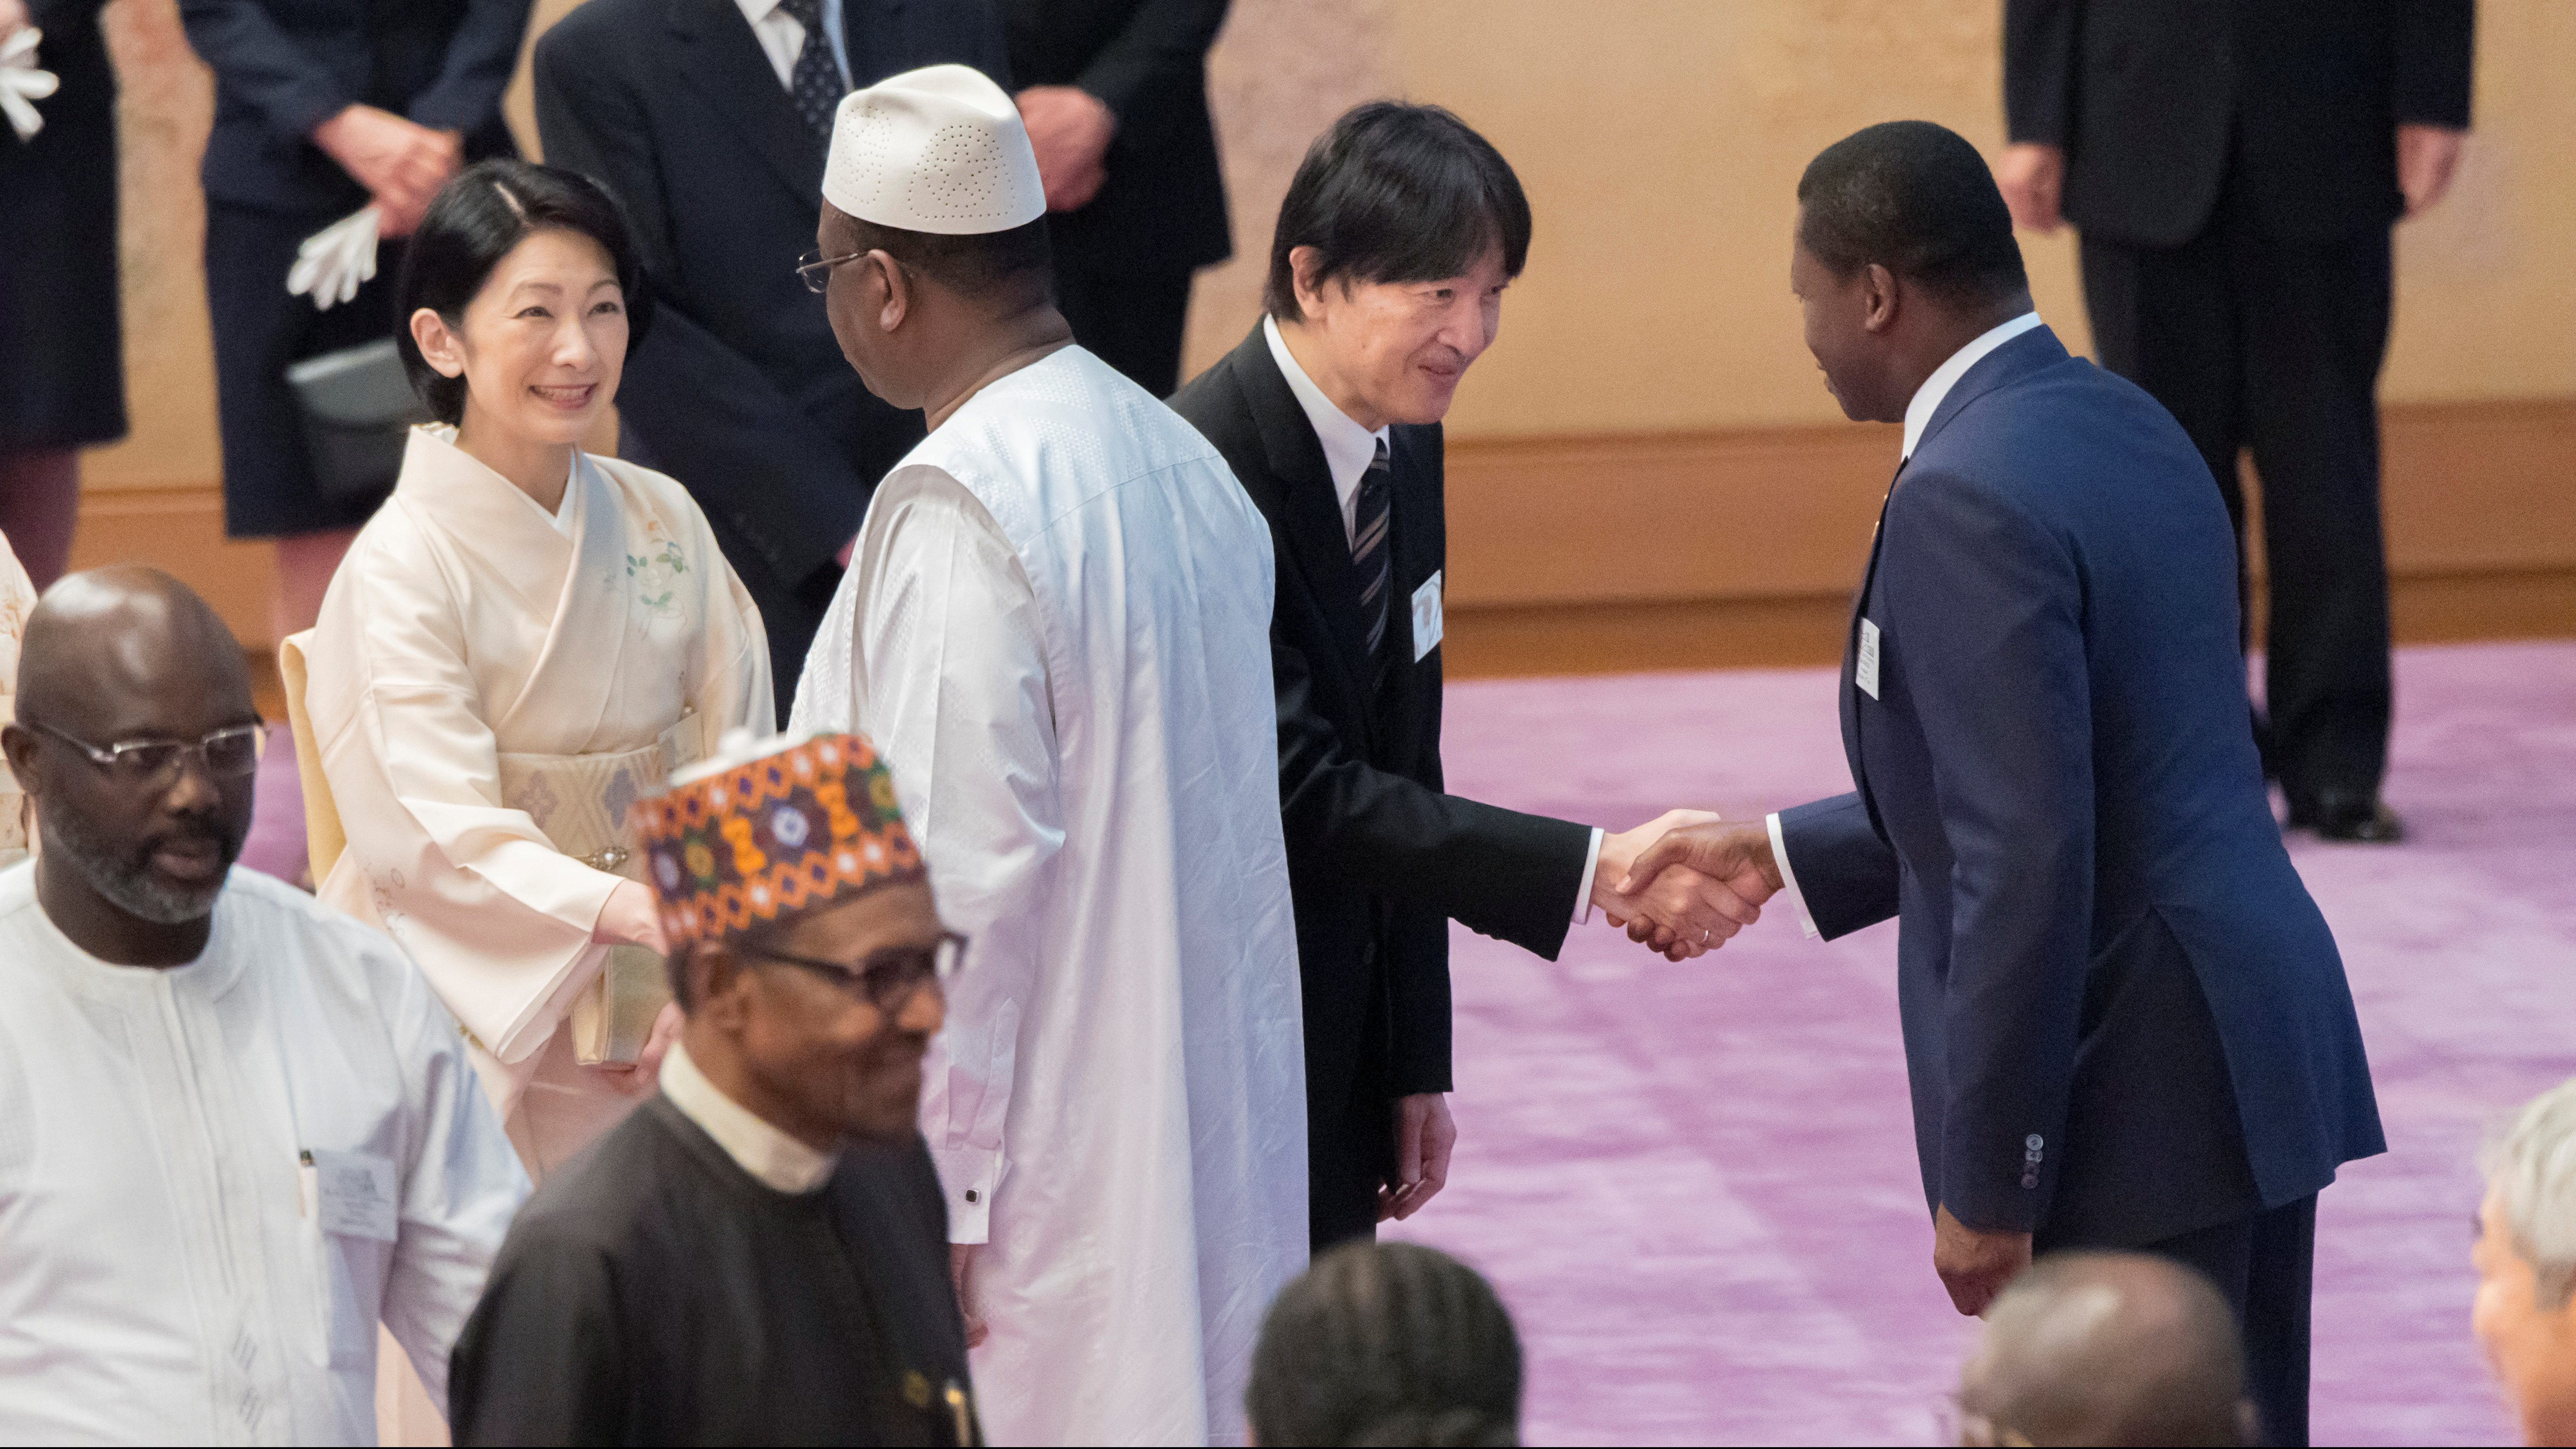 Japan's Crown Prince Akishino and Crown Princess Kiko greet leaders of the African nations attending the seventh Tokyo International Conference on African Development (TICAD) during a tea party at the Imperial Palace in Tokyo, August 30, 2019, in this photo released by Imperial Household Agency of Japan.